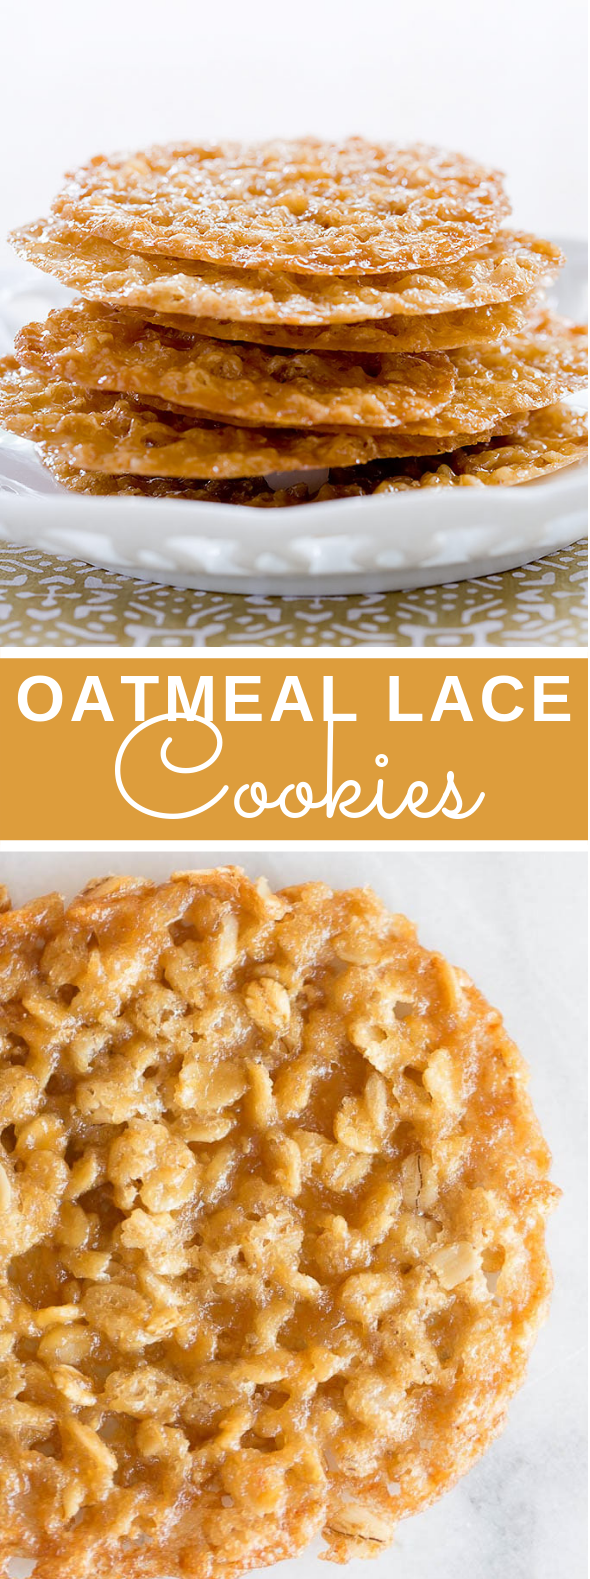 Oatmeal Lace Cookies #desserts #easy